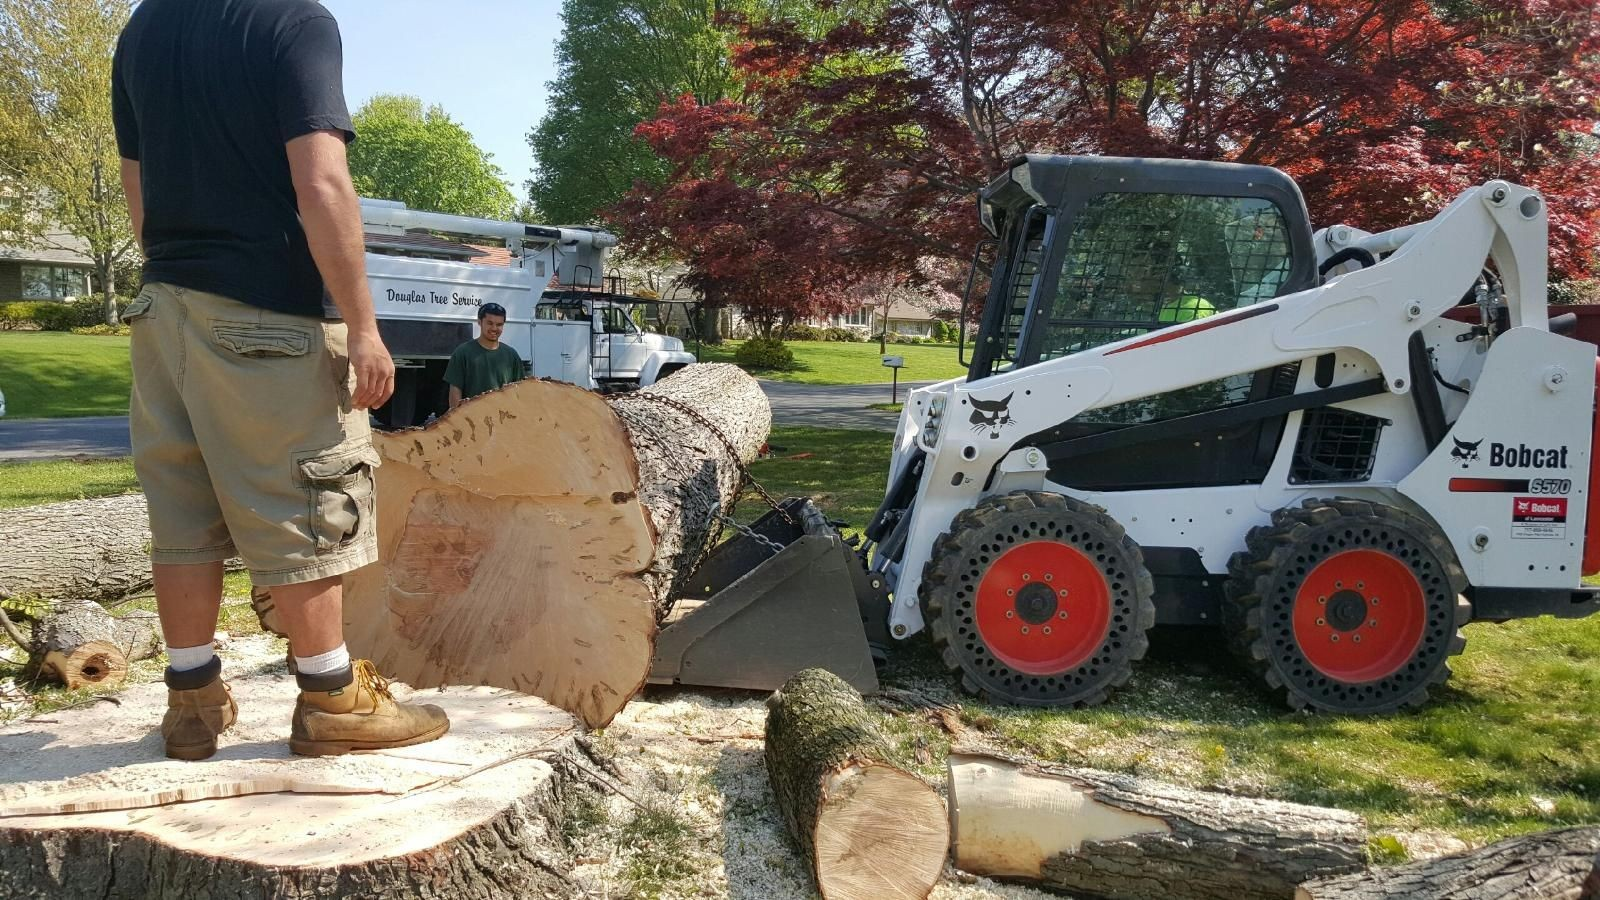 Rancho Santa Fe-Encinitas CA Tree Trimming and Stump Grinding Services-We Offer Tree Trimming Services, Tree Removal, Tree Pruning, Tree Cutting, Residential and Commercial Tree Trimming Services, Storm Damage, Emergency Tree Removal, Land Clearing, Tree Companies, Tree Care Service, Stump Grinding, and we're the Best Tree Trimming Company Near You Guaranteed!